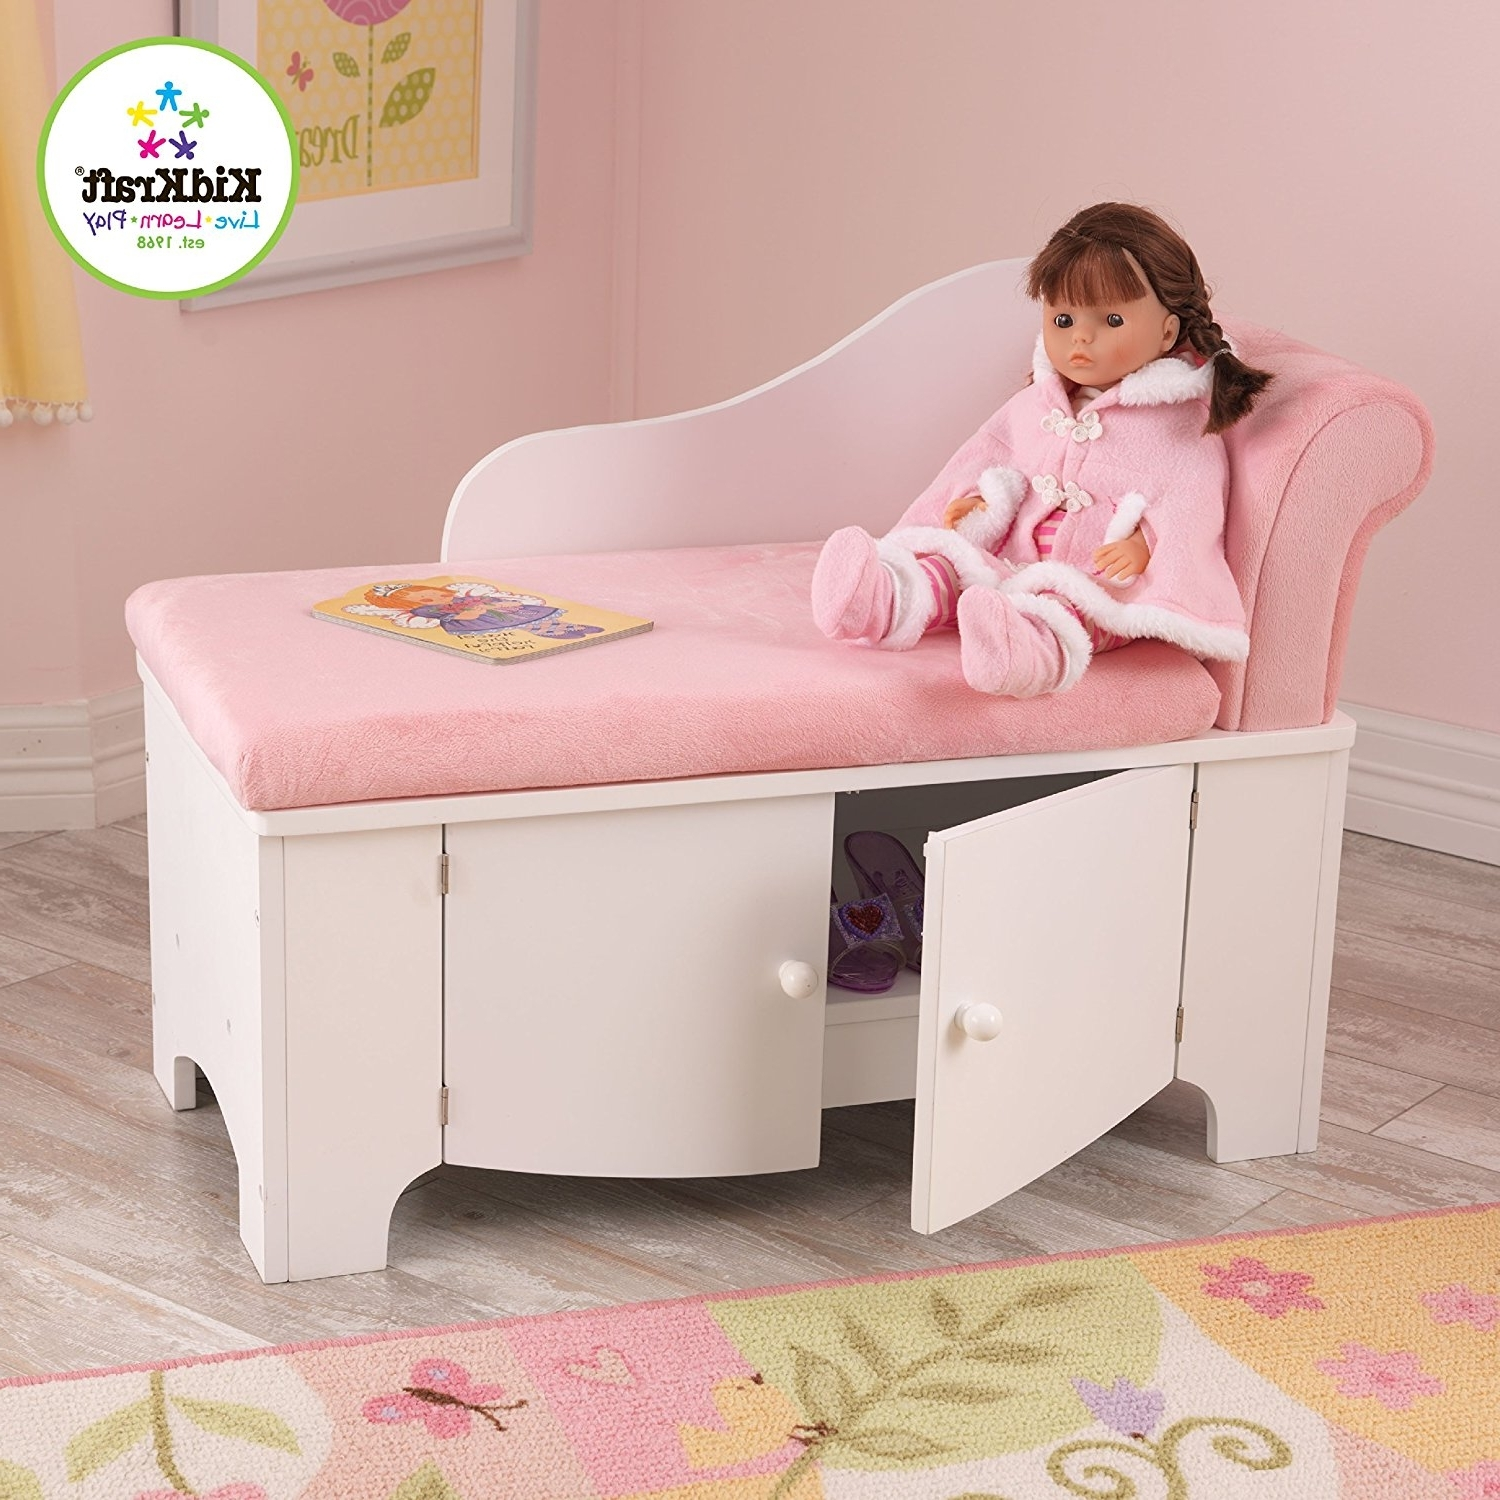 2018 Amazon: Kidkraft Girl's Princess Chaise Lounge: Toys & Games Regarding Kids Chaise Lounges (View 13 of 15)